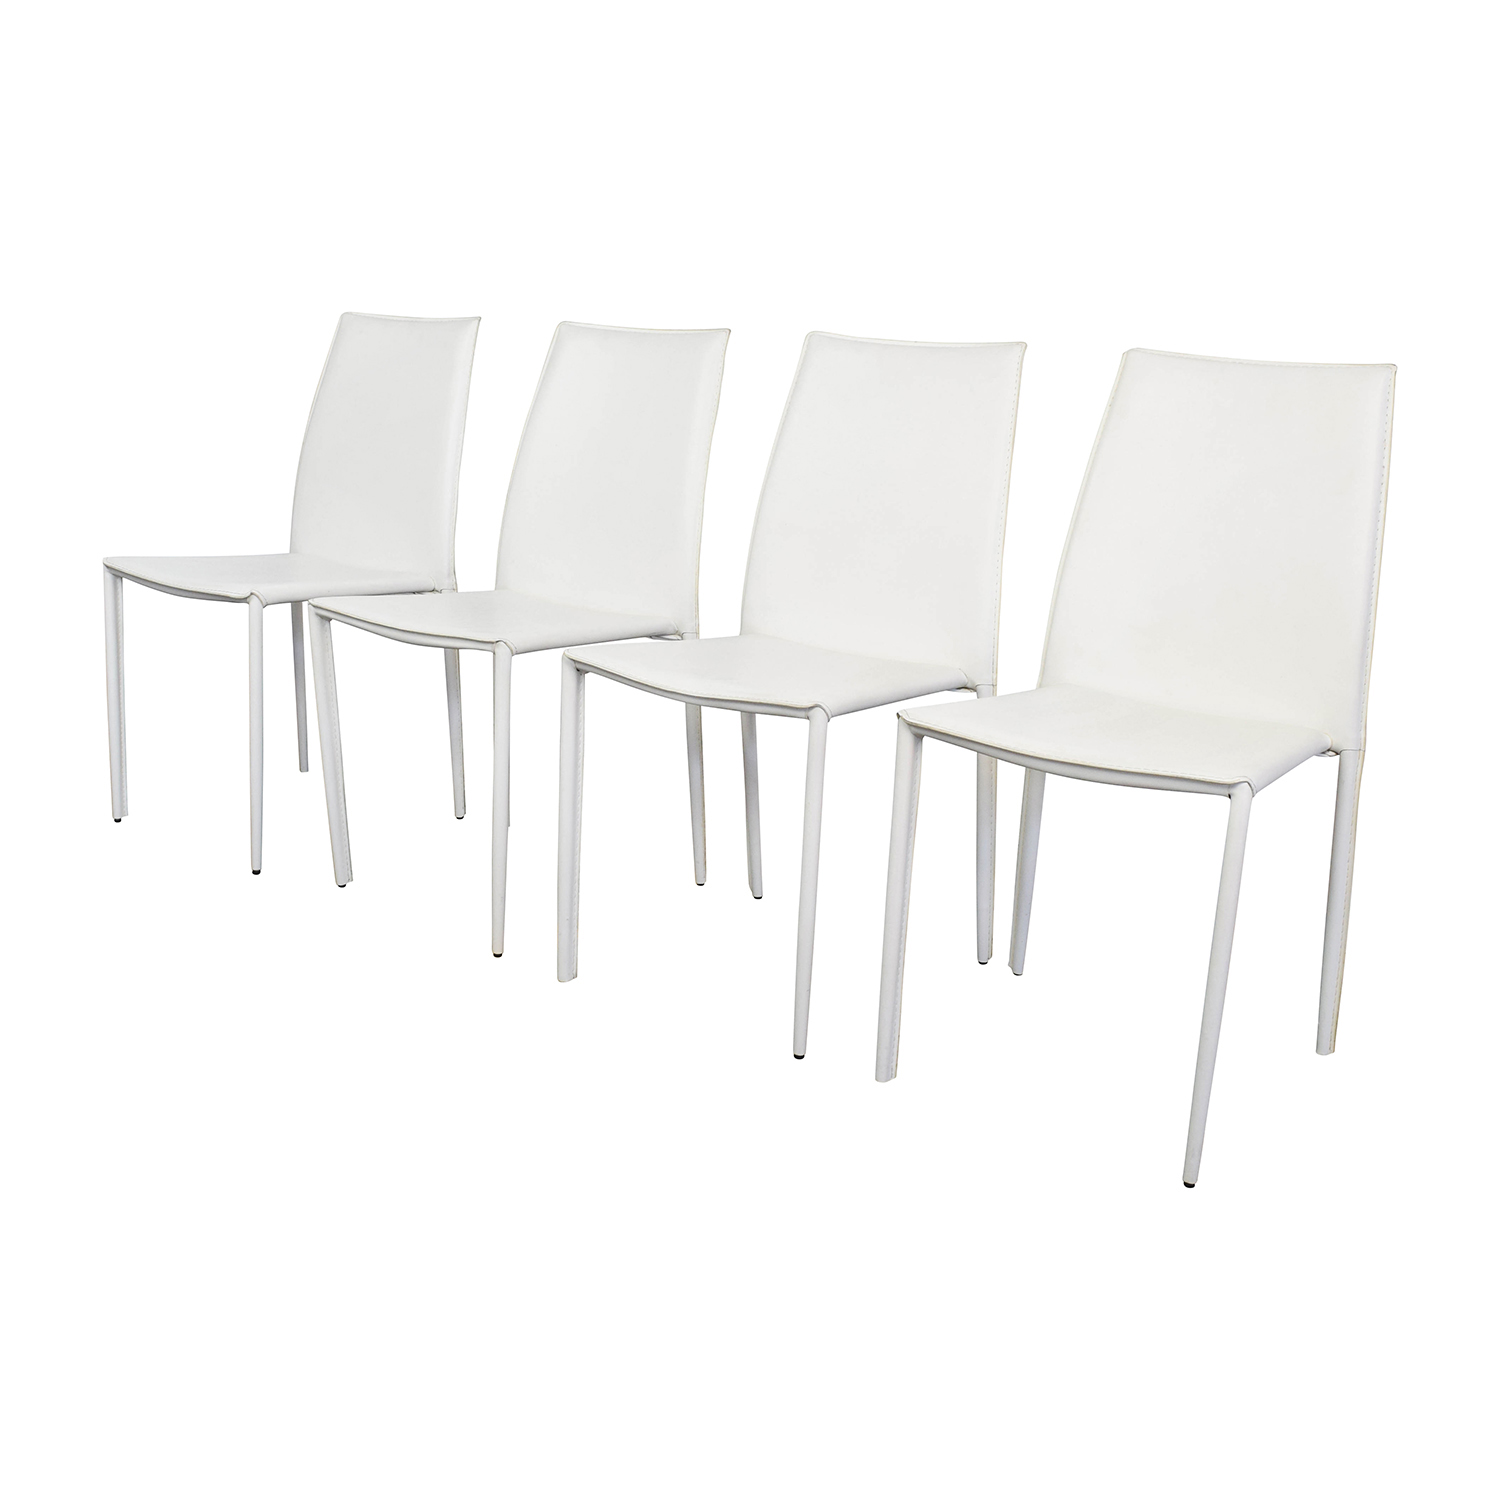 all modern leather dining chairs what is a chairperson in meeting 77 off white